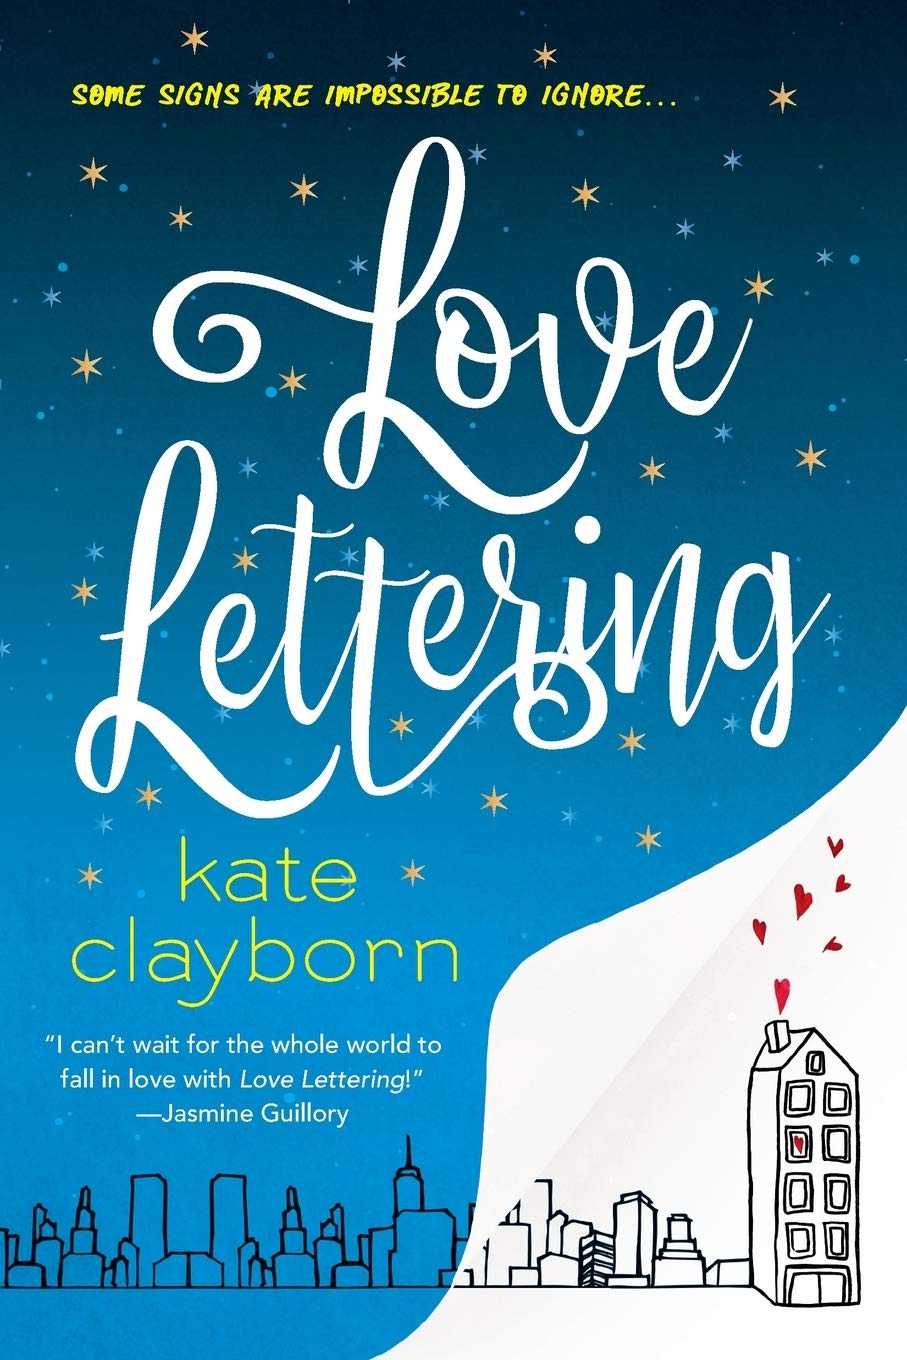 9 Modern Romance Books I Recently Read and Loved // Love Lettering by Kate Clayborn